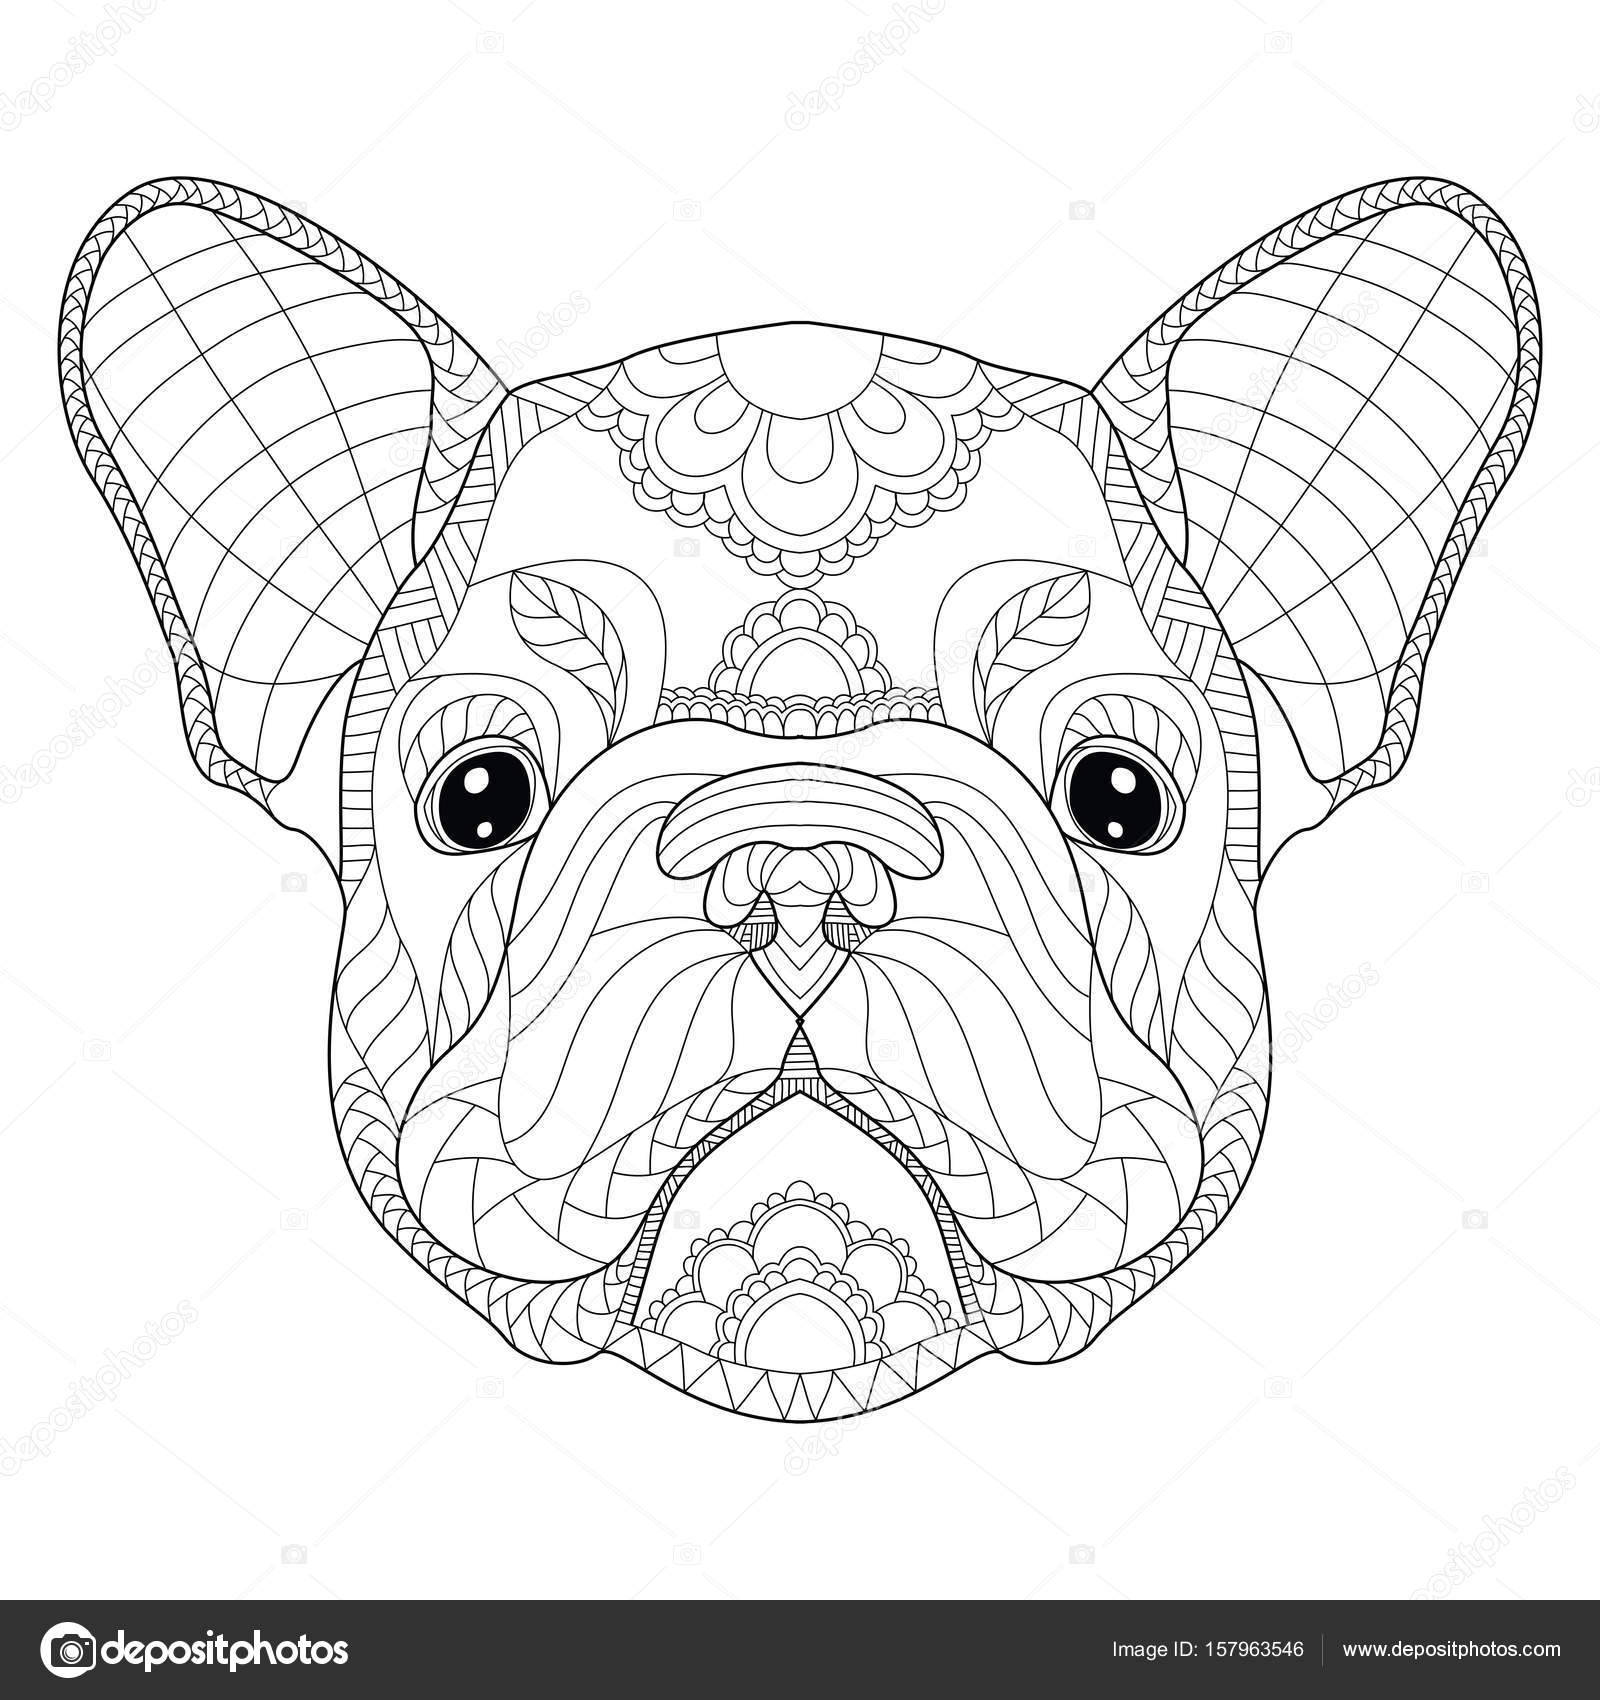 French bulldog puppy head zentangle stylized, vector